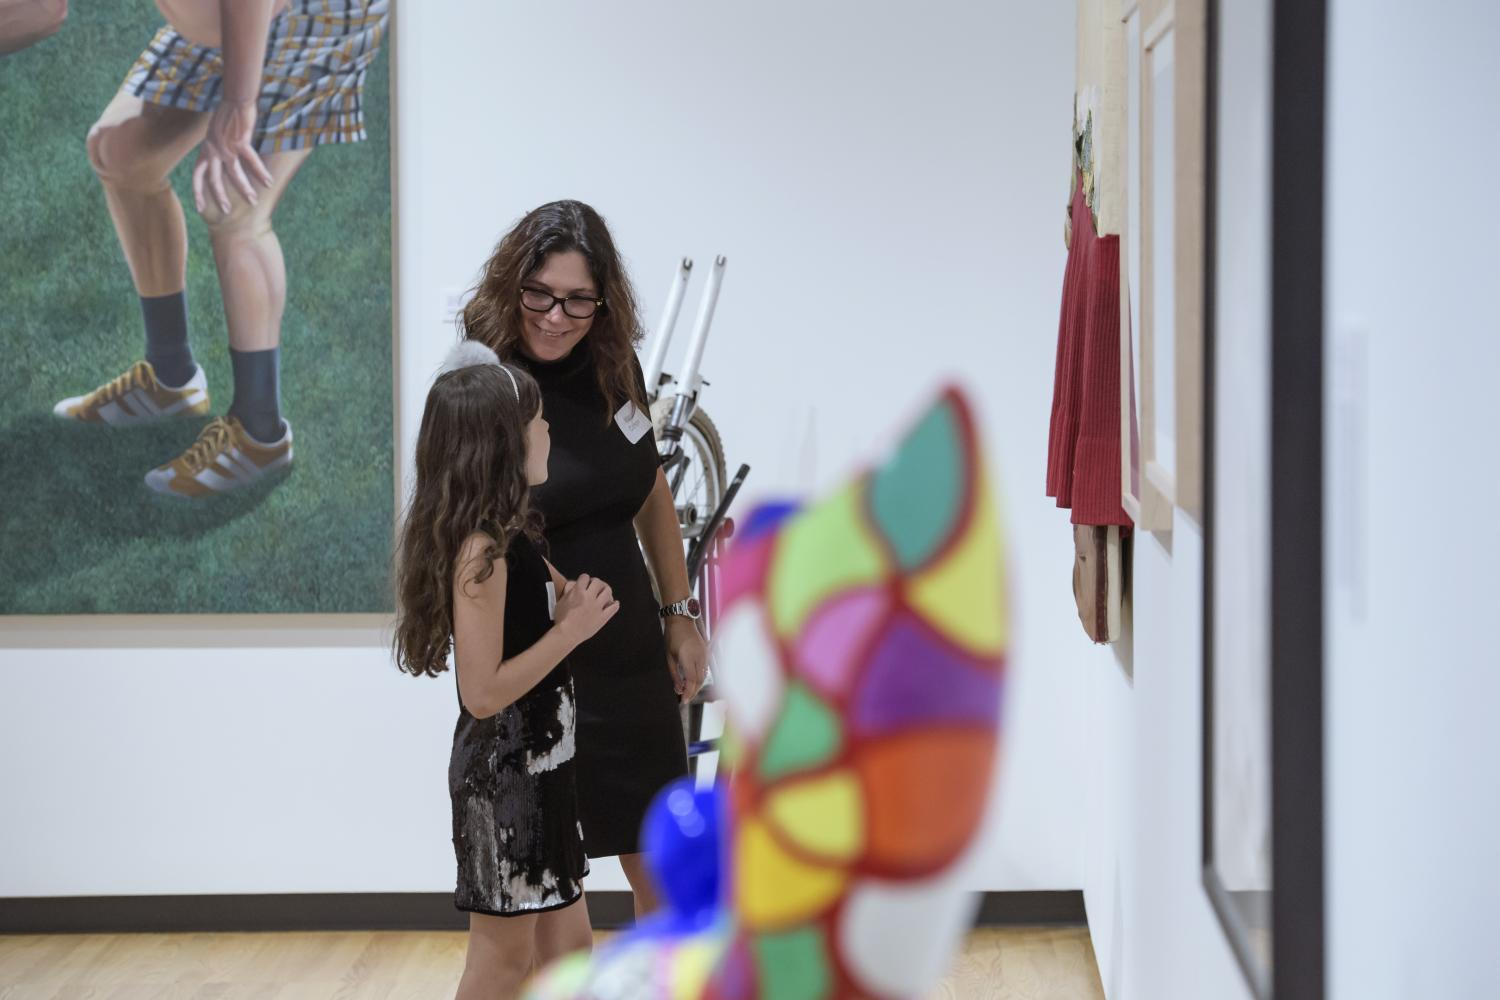 Artwork donor Eva Cohon and her daughter view a special exhibition of work recently added to the collection, including art by Nancy Hild, Bea Nettles, and Niki de Saint-Phalle, 2018. Photo by Della Perrone.